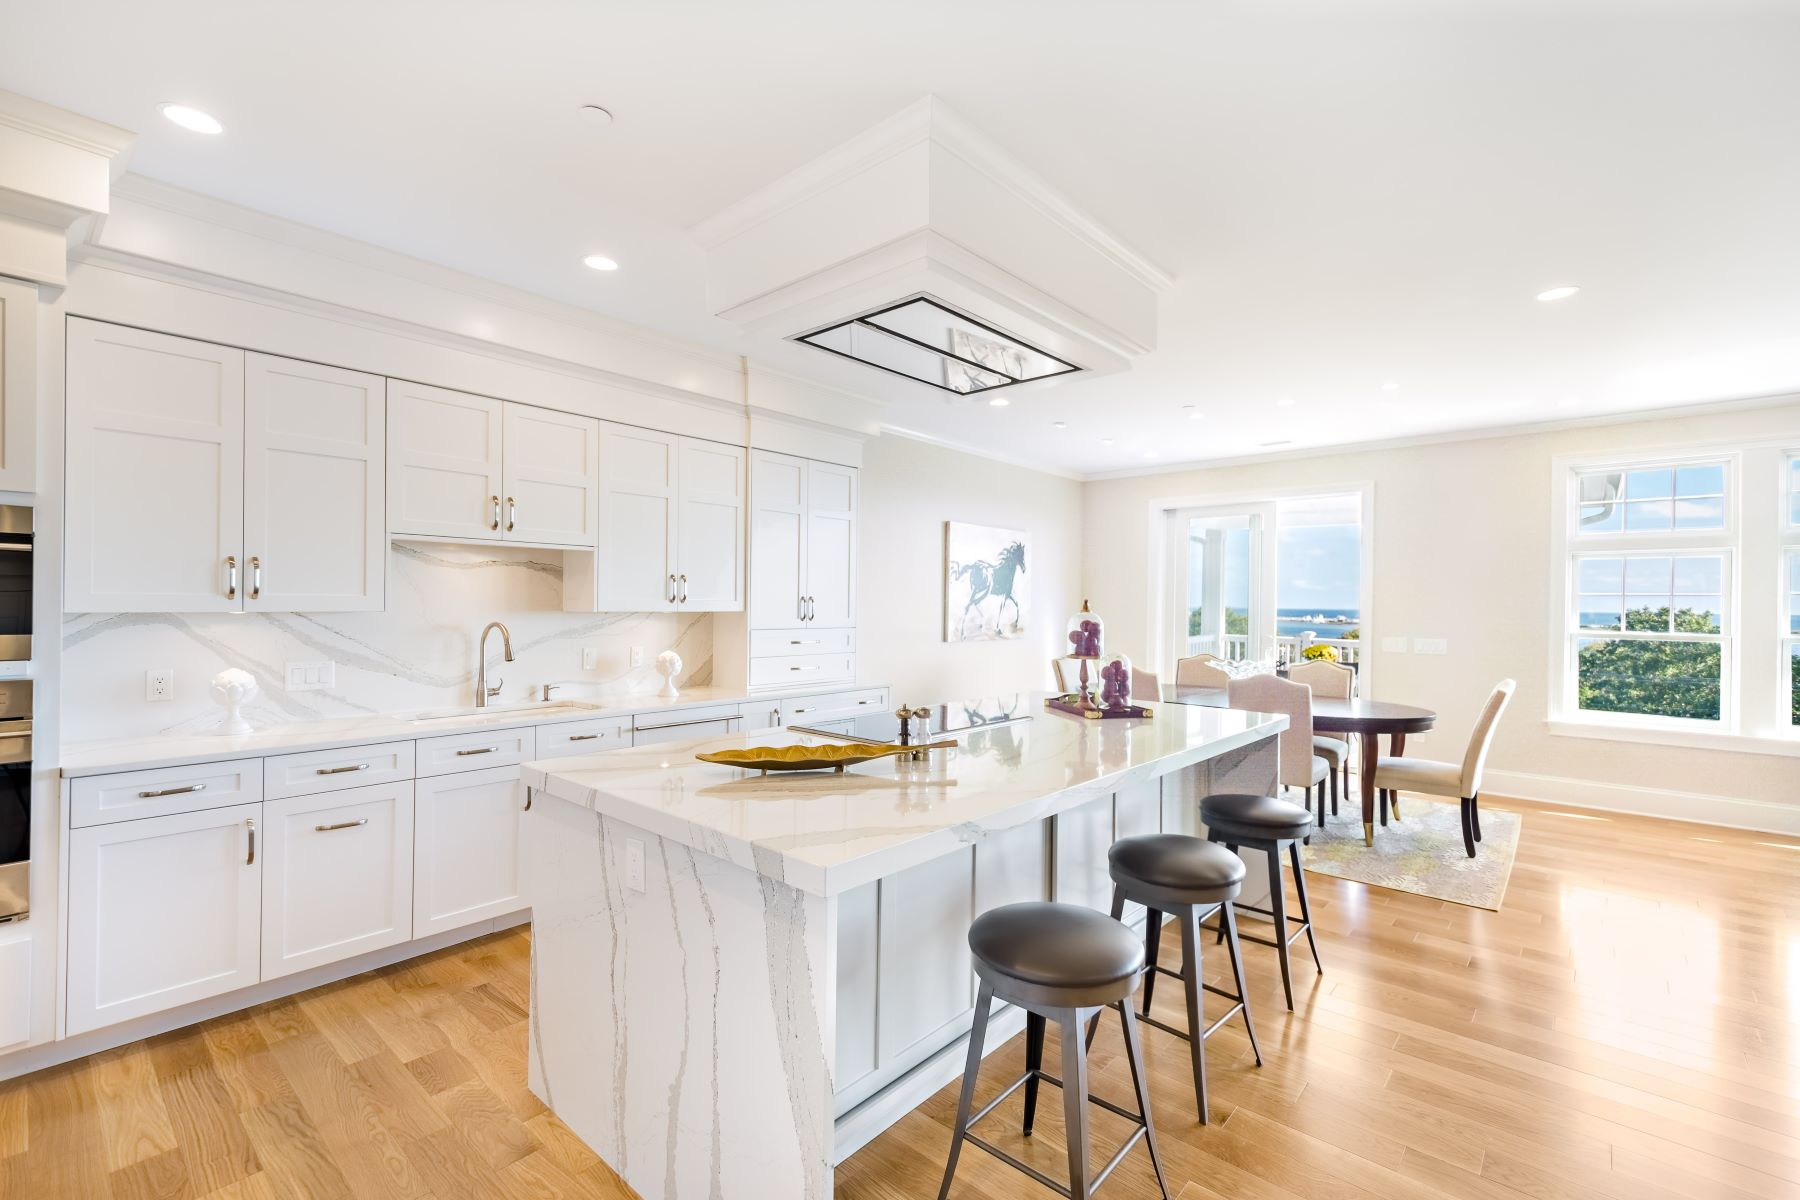 Additional photo for property listing at 1 Compass Way, #301, Westerly, RI 1 Compass Way 301 Westerly, Rhode Island 02891 United States